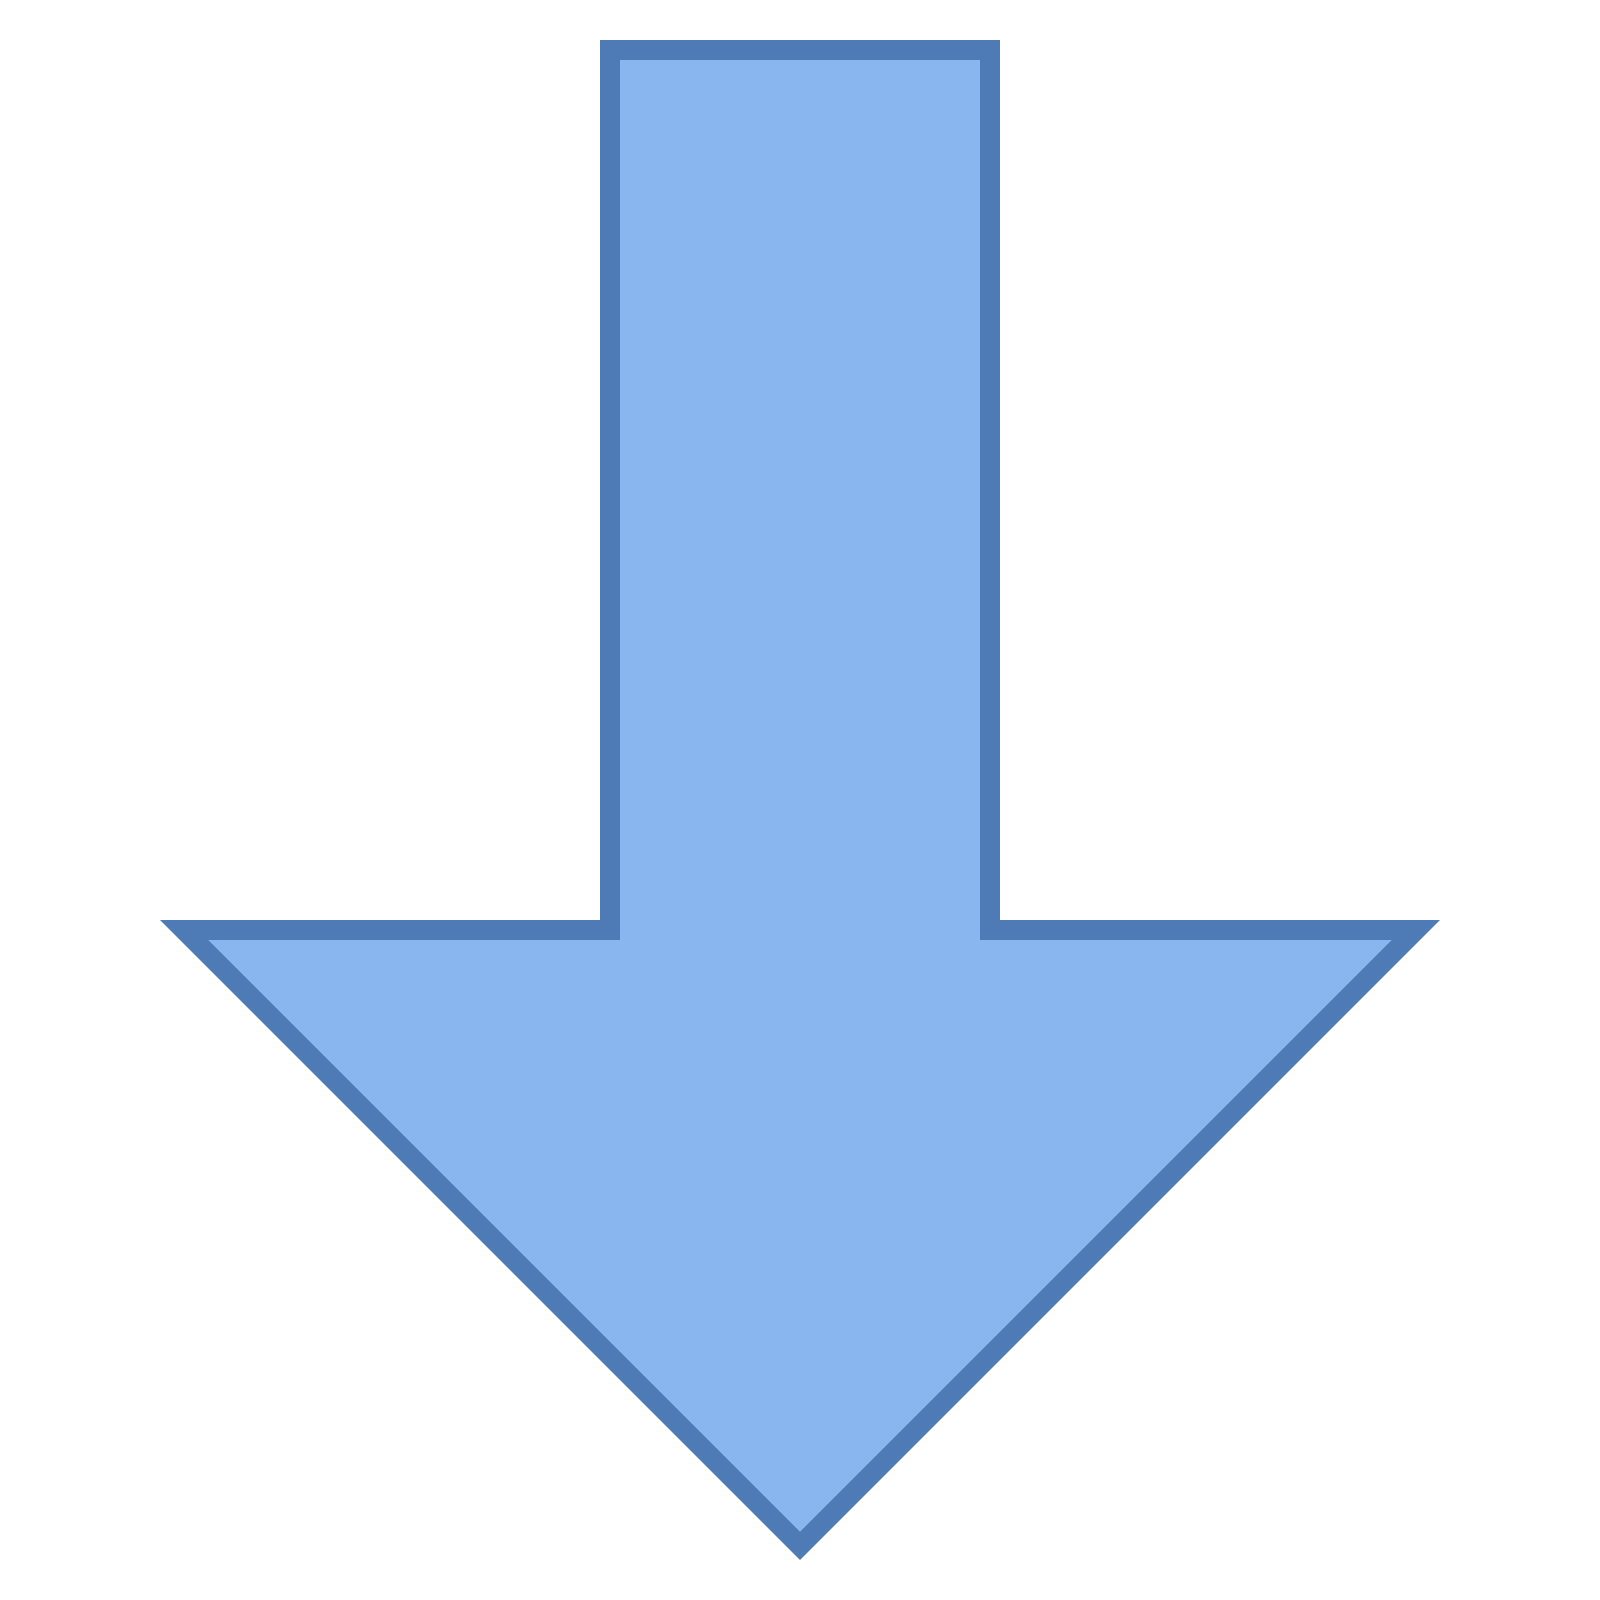 Arrows pointing down png. Thick arrow icon